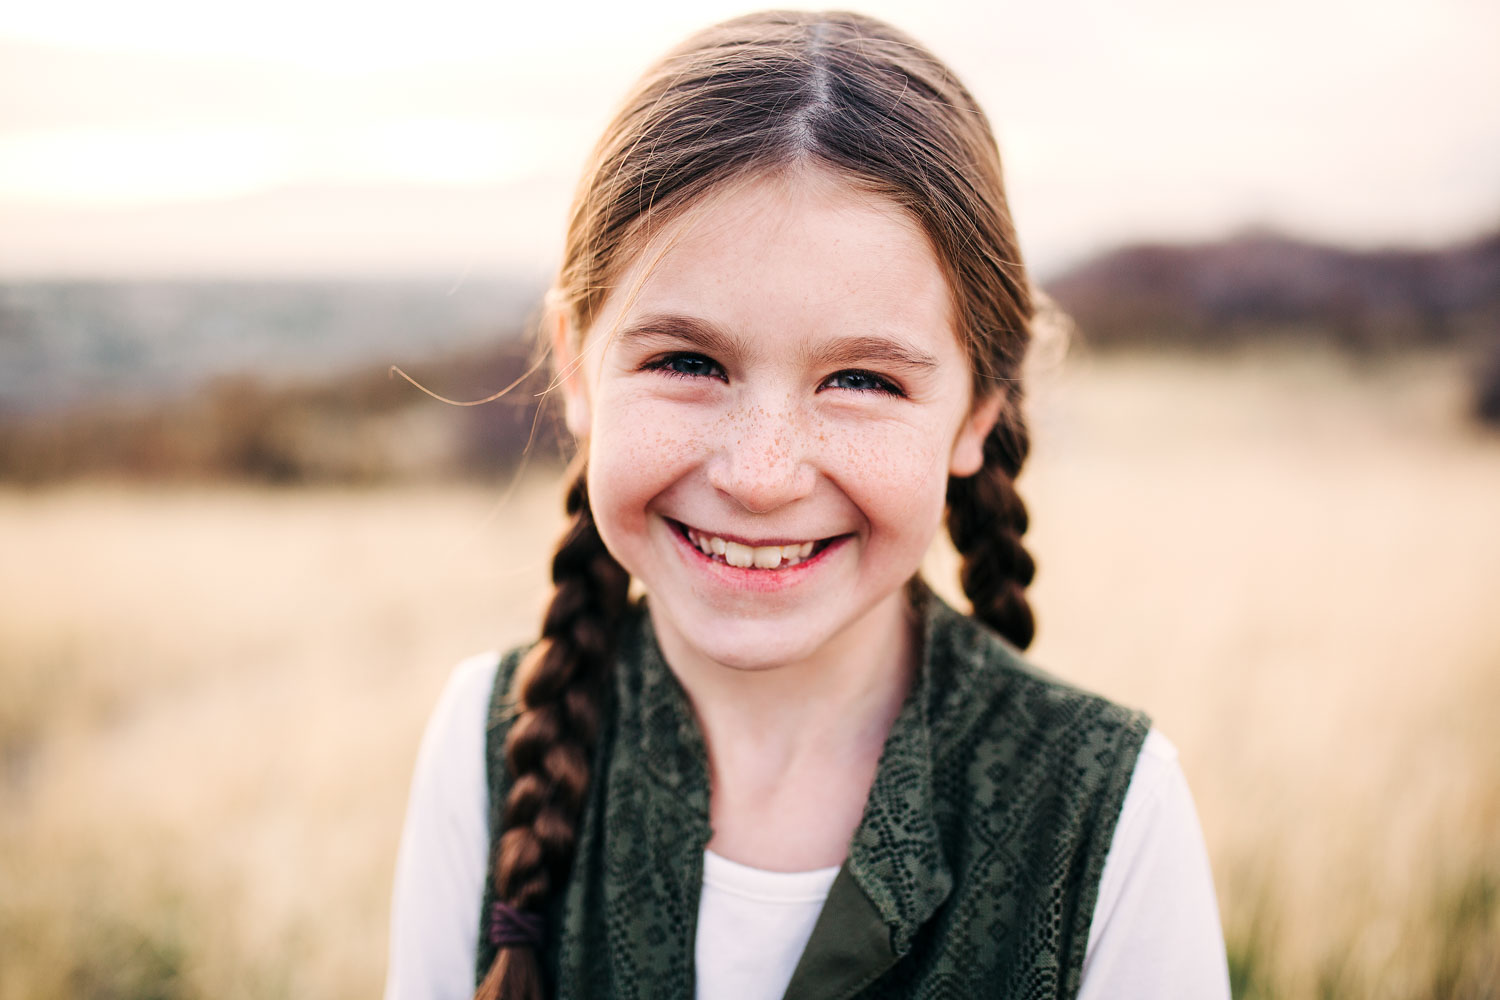 A girl smiles for her portrait during family pictures with Amy Wright, a photographer based out of Sacramento, California.